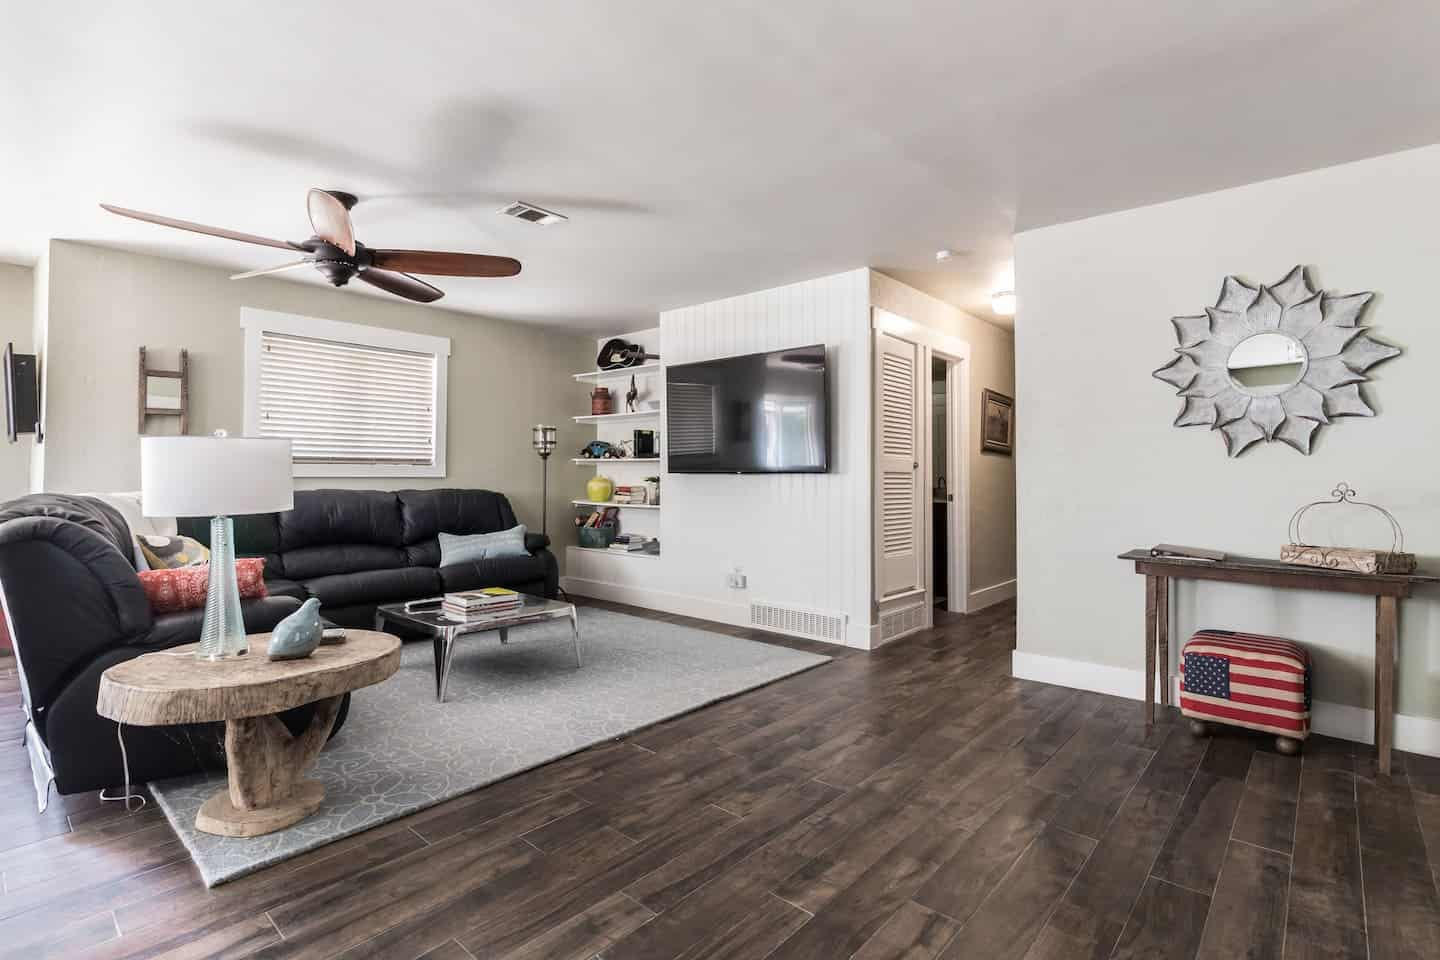 Image of Airbnb rental in Arlington, Texas